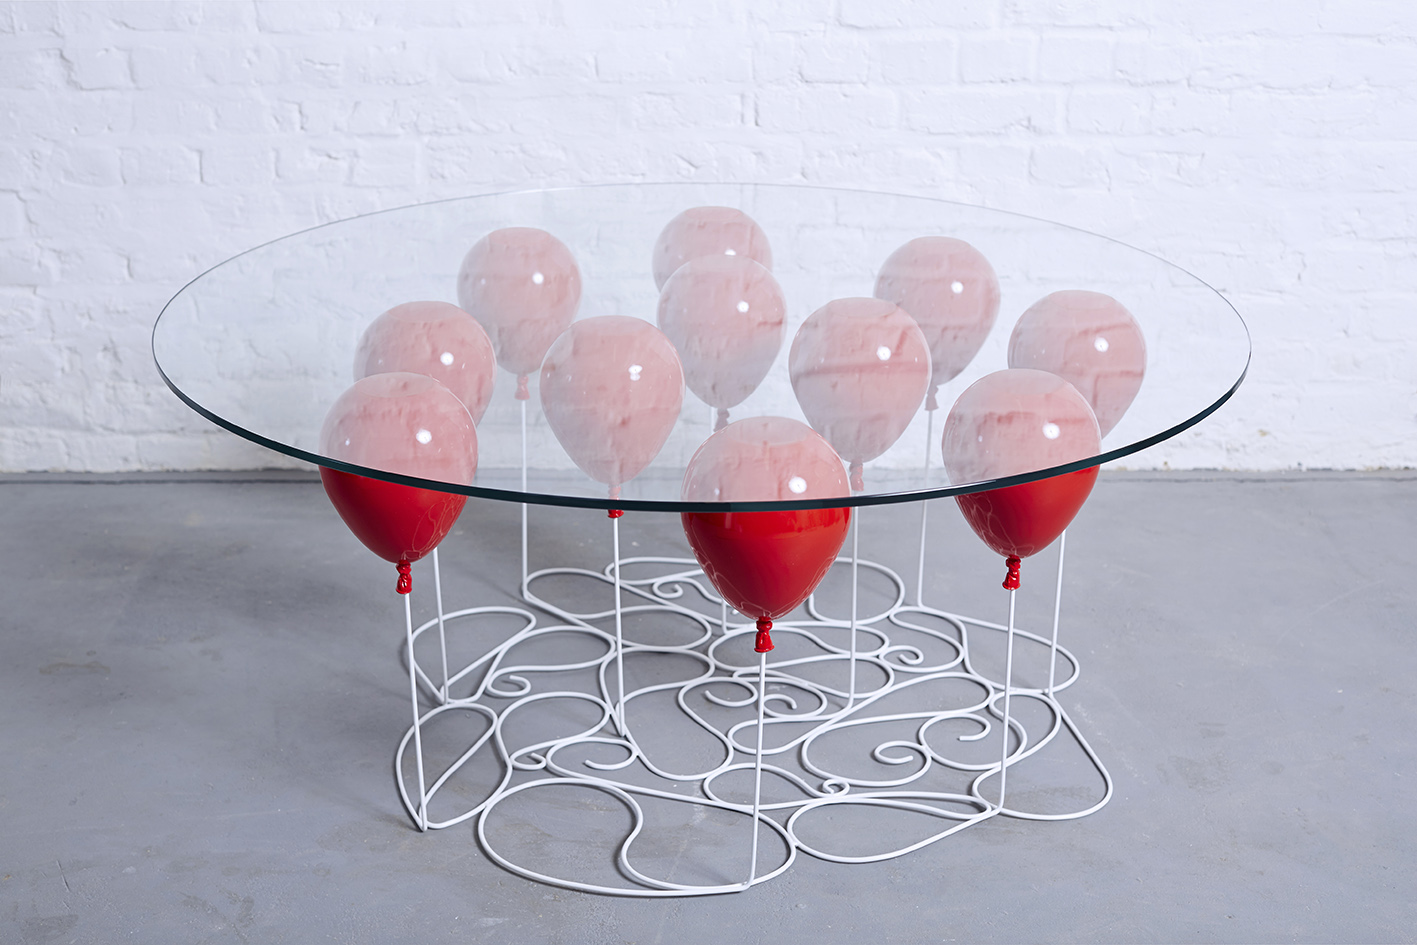 Helium Balloons Hold The Table Art People Gallery